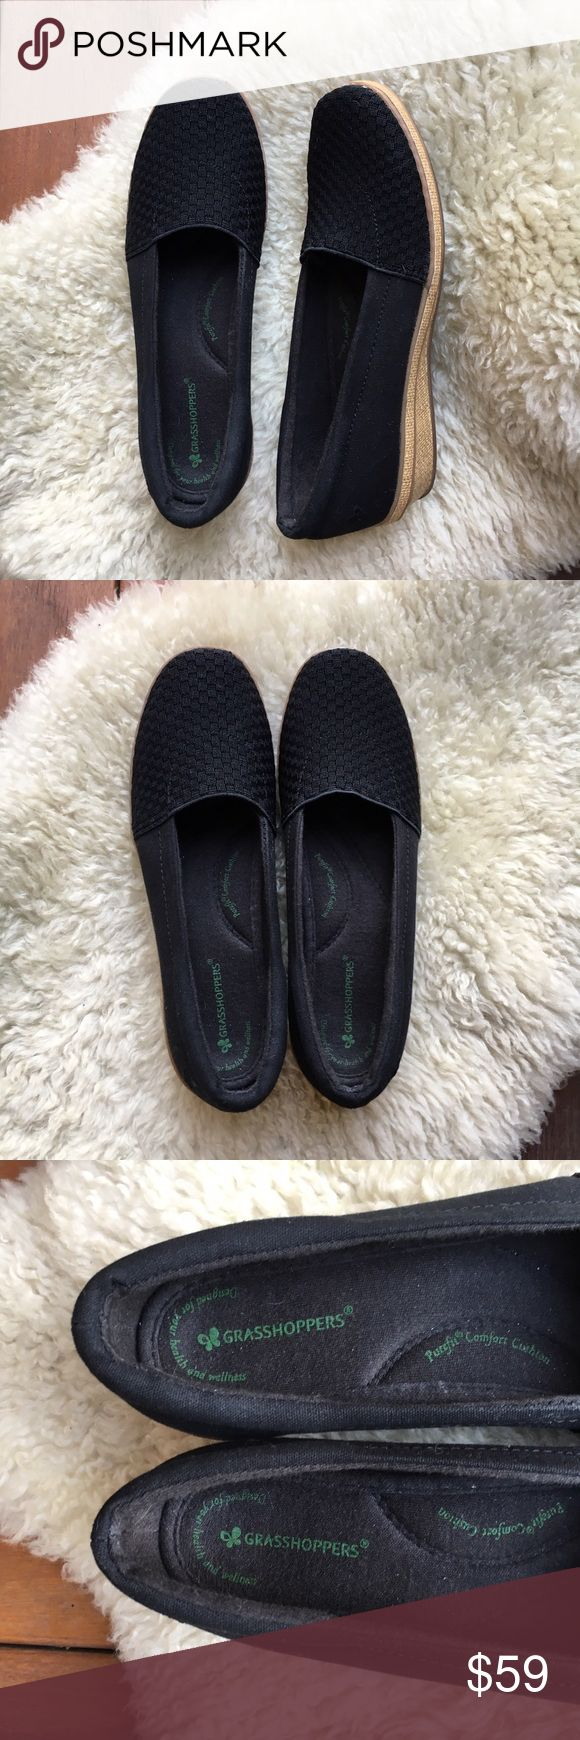 """{Grasshopper} Black Crosshatch Canvas Wedge 7.5 BNWOT! Super cool (figuratively AND literally)! Comfortable, on trend style. Super cushion technology. Woven like texture lets Air breeze through. Perfect for summer! 1"""" wedge. Offers warmly welcomed! Grasshoppers Shoes Wedges"""